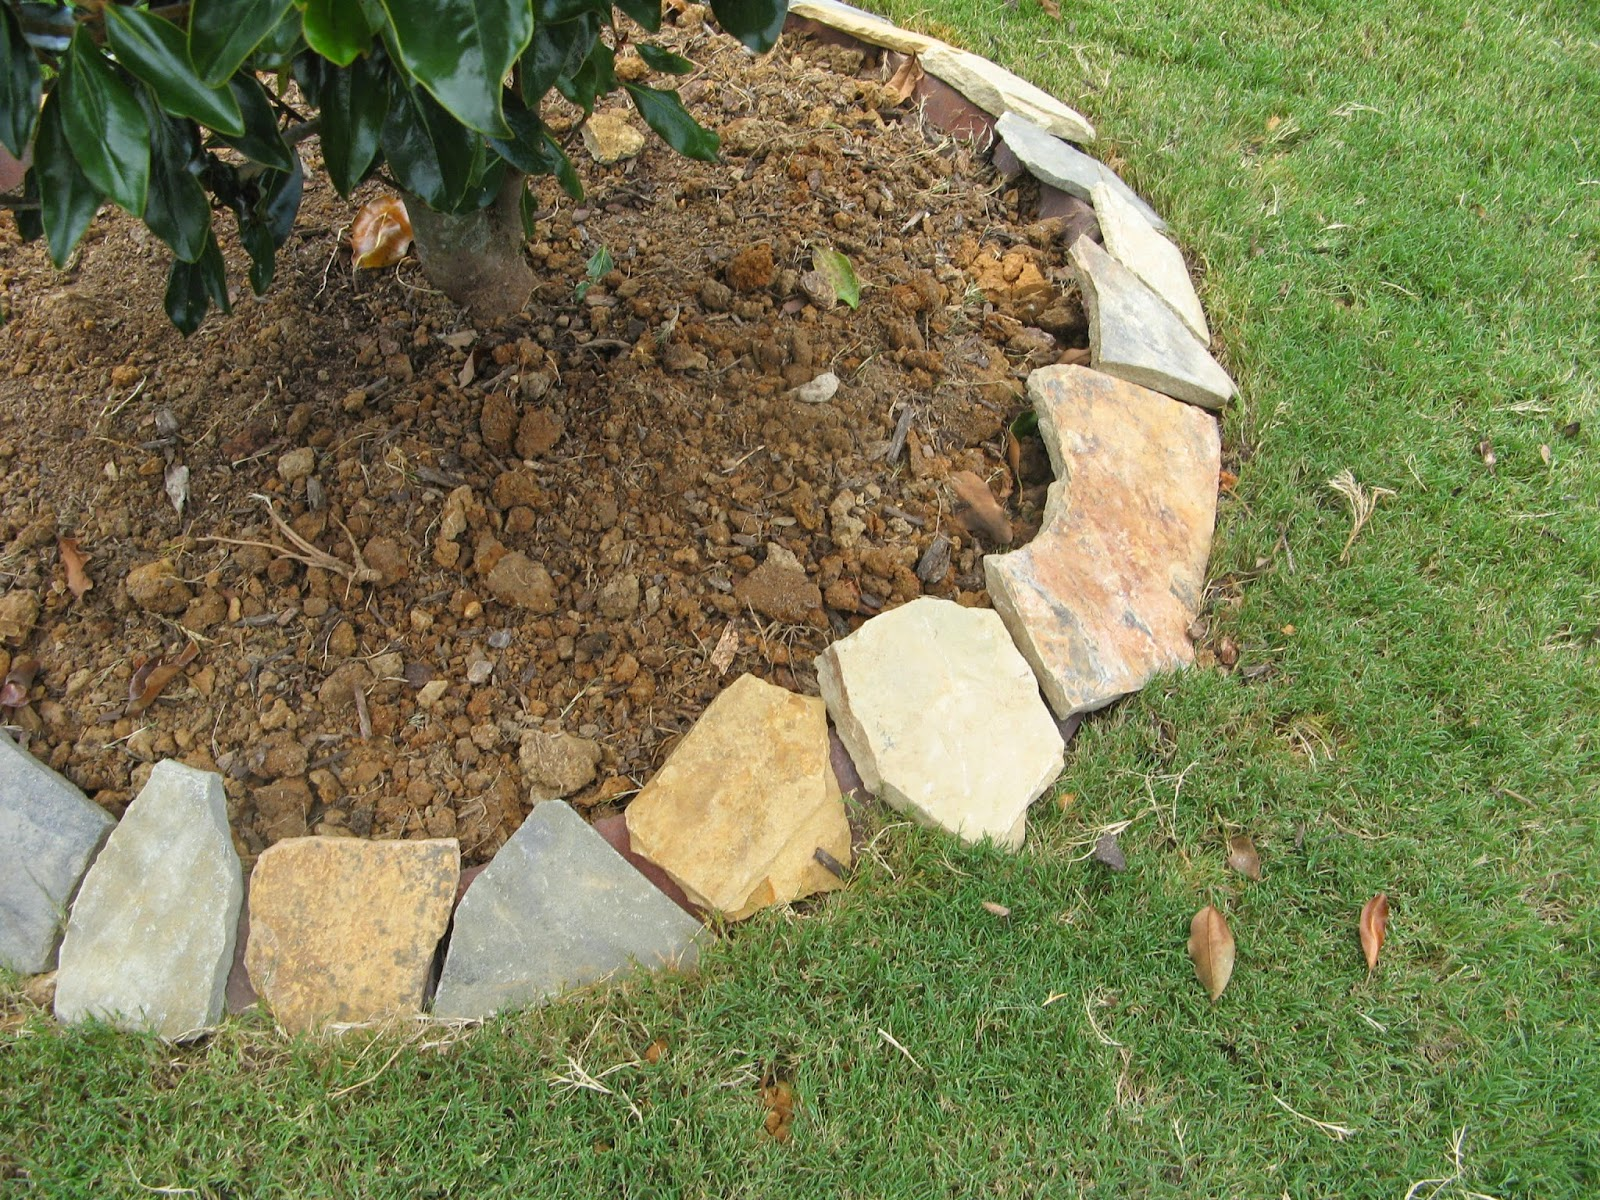 DIY STONE LANDSCAPING BORDER - placing the stones